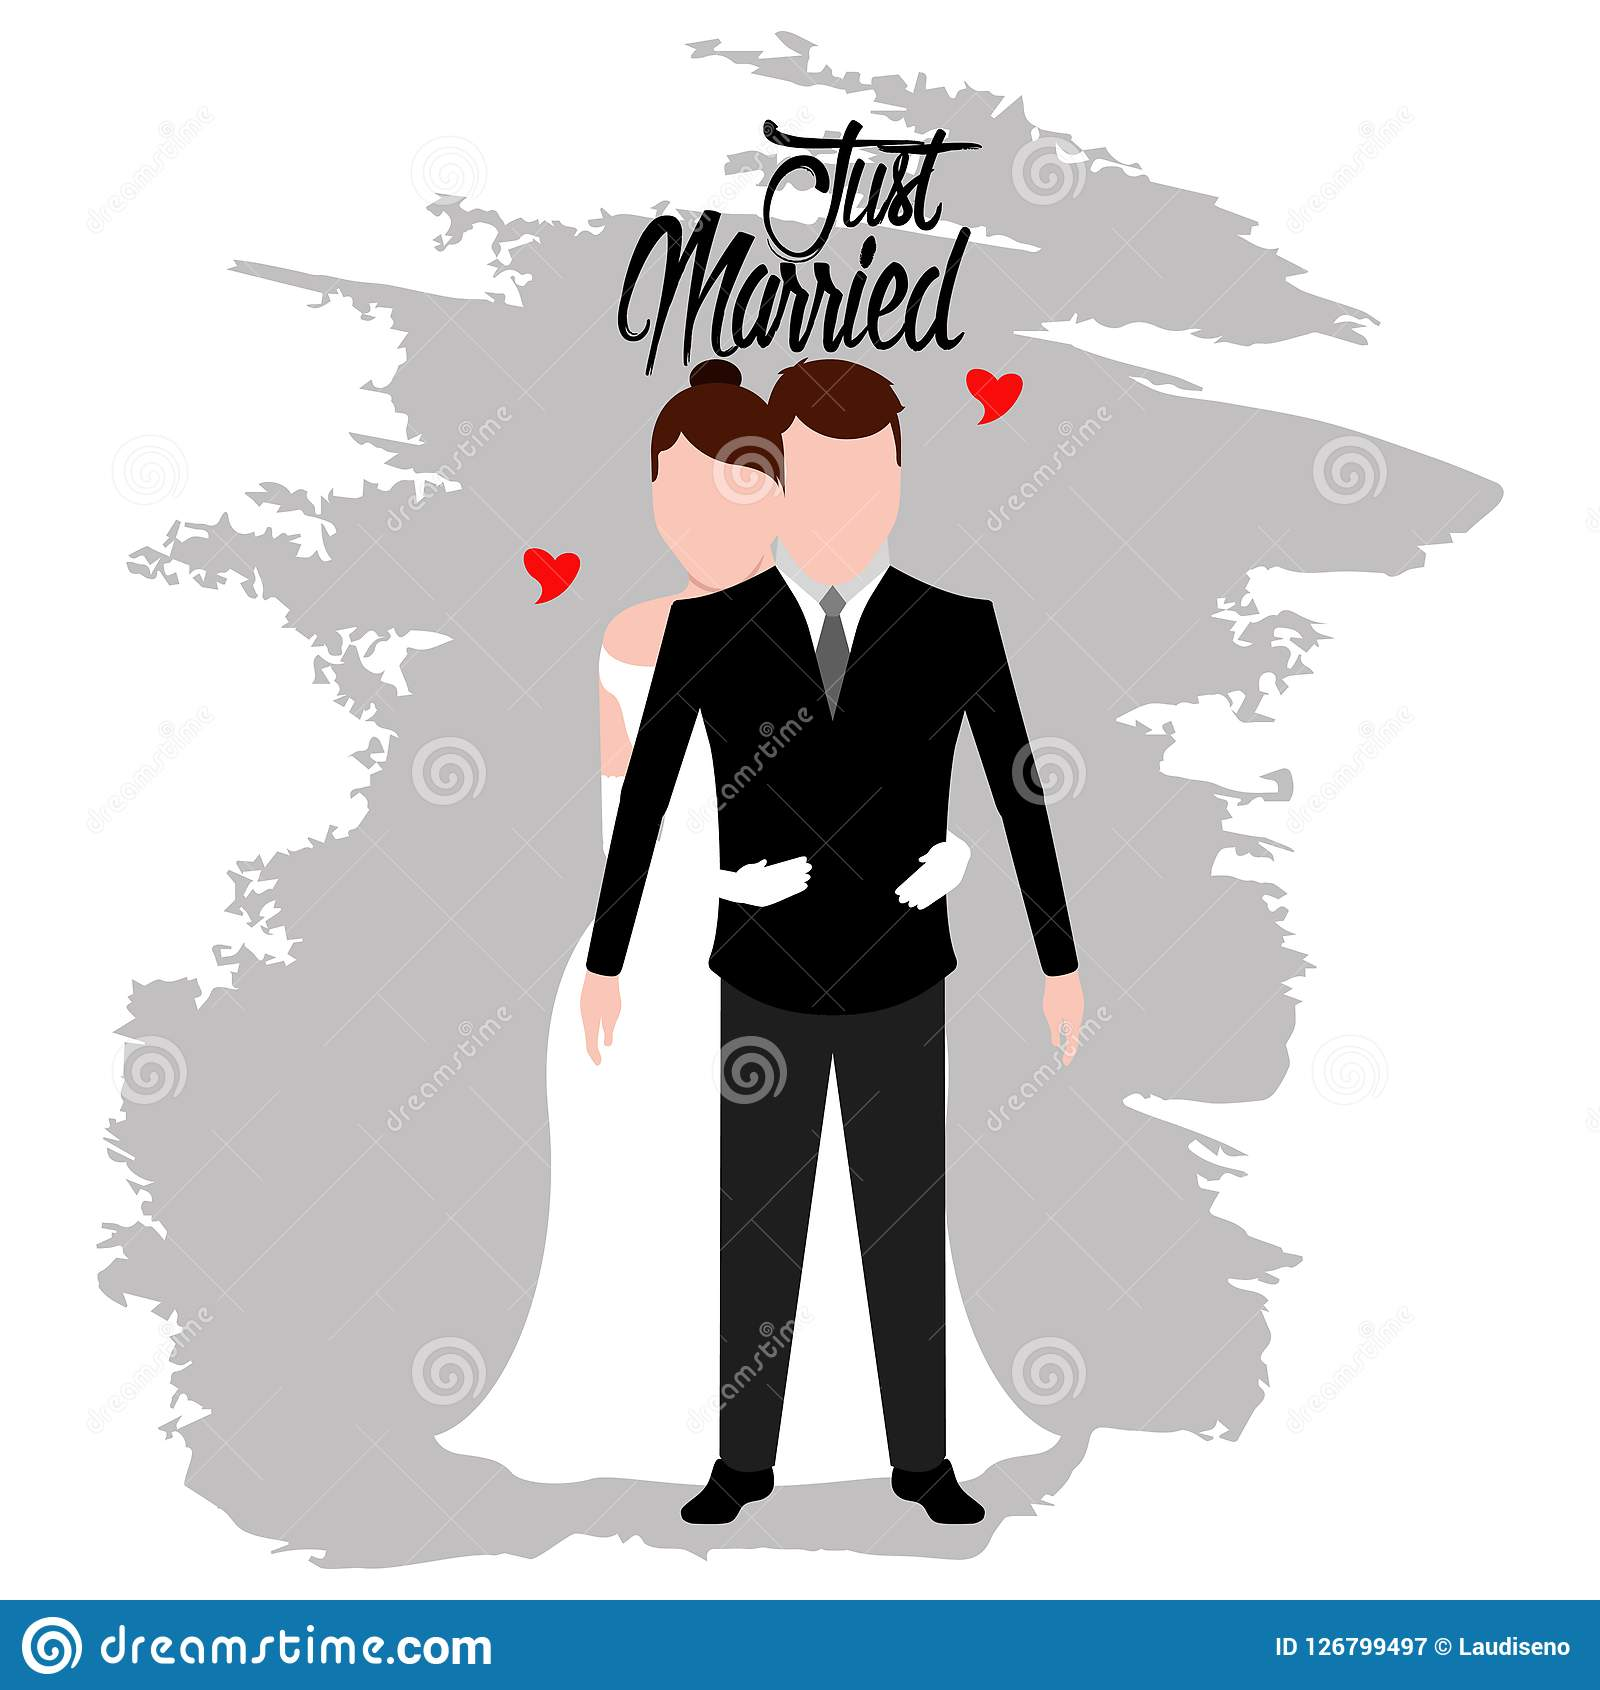 Just married Illustrations and Clipart. 6,815 Just married royalty free  illustrations, and drawings available to search from thousands of stock  vector EPS clip art graphic designers.